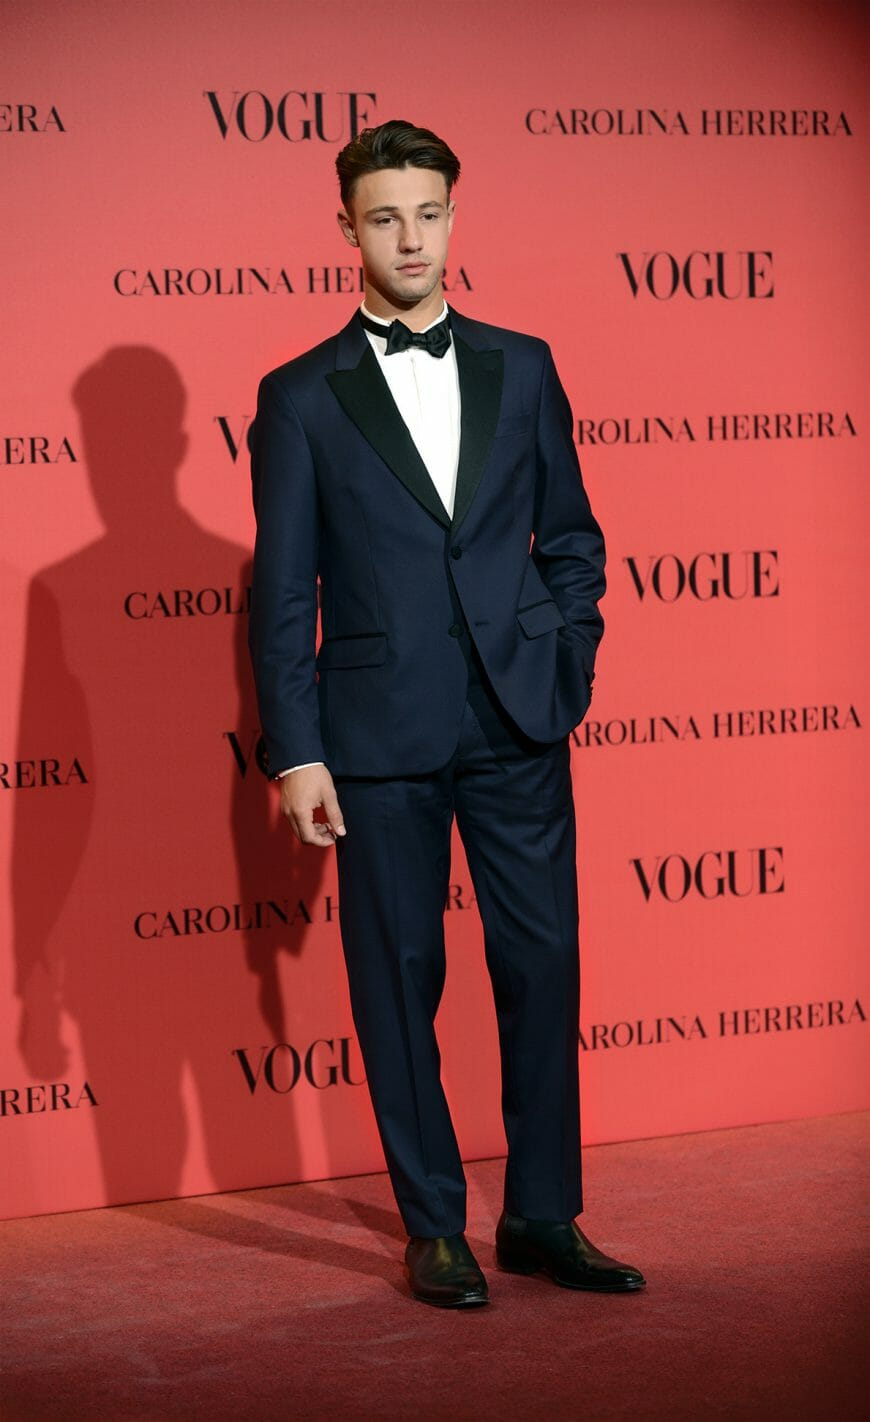 ch-carolina-herrera-fashion-vogue-party-influencers-homepage-banner-image-cameron-dallas